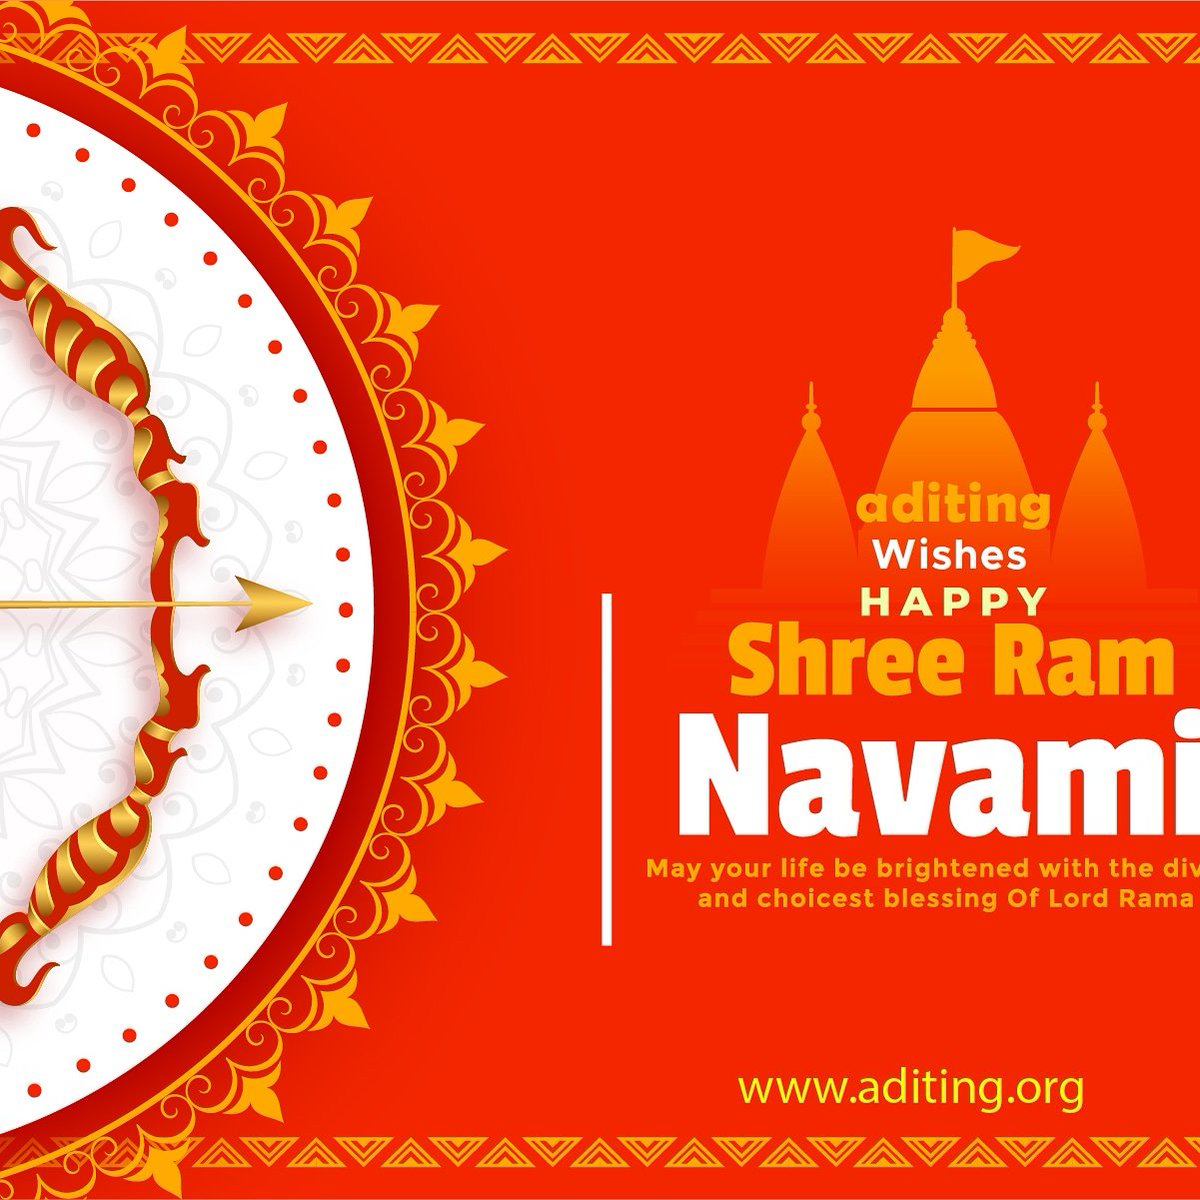 Aditing wishing you and your family a happy Ram Navami and may Gob bless you with joy and happiness  #Aditingofficial #Aditing #ForTheBusiness #Startupidea #Startupbusiness #shreeram #RamNavami2020 #RamNavamipic.twitter.com/ng0rZnFAZc